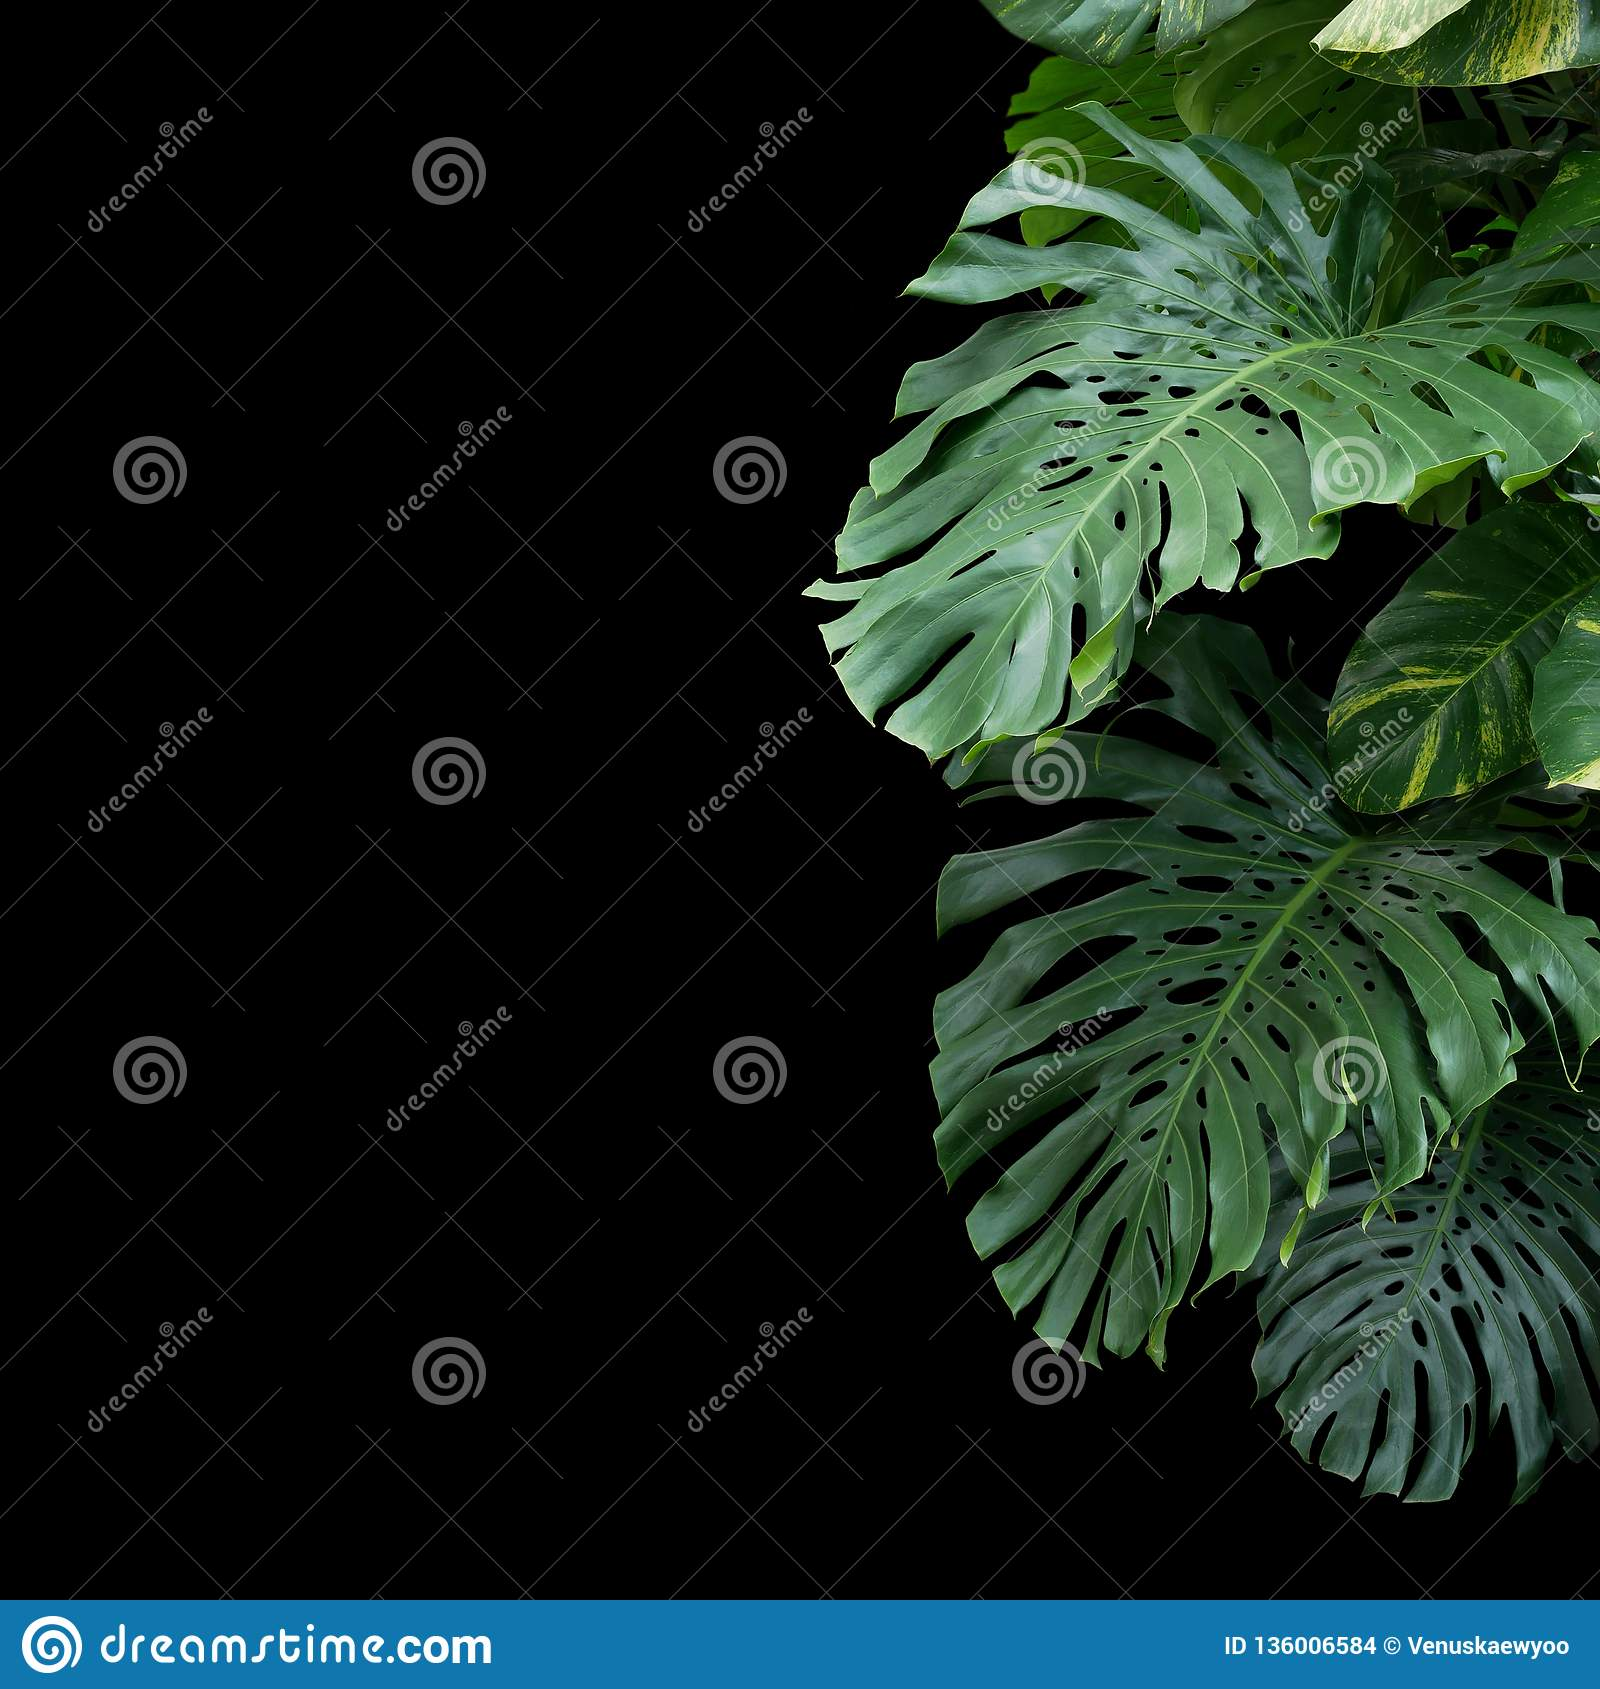 Green monstera philodendron tropical plant leaves vine on black background with copy space